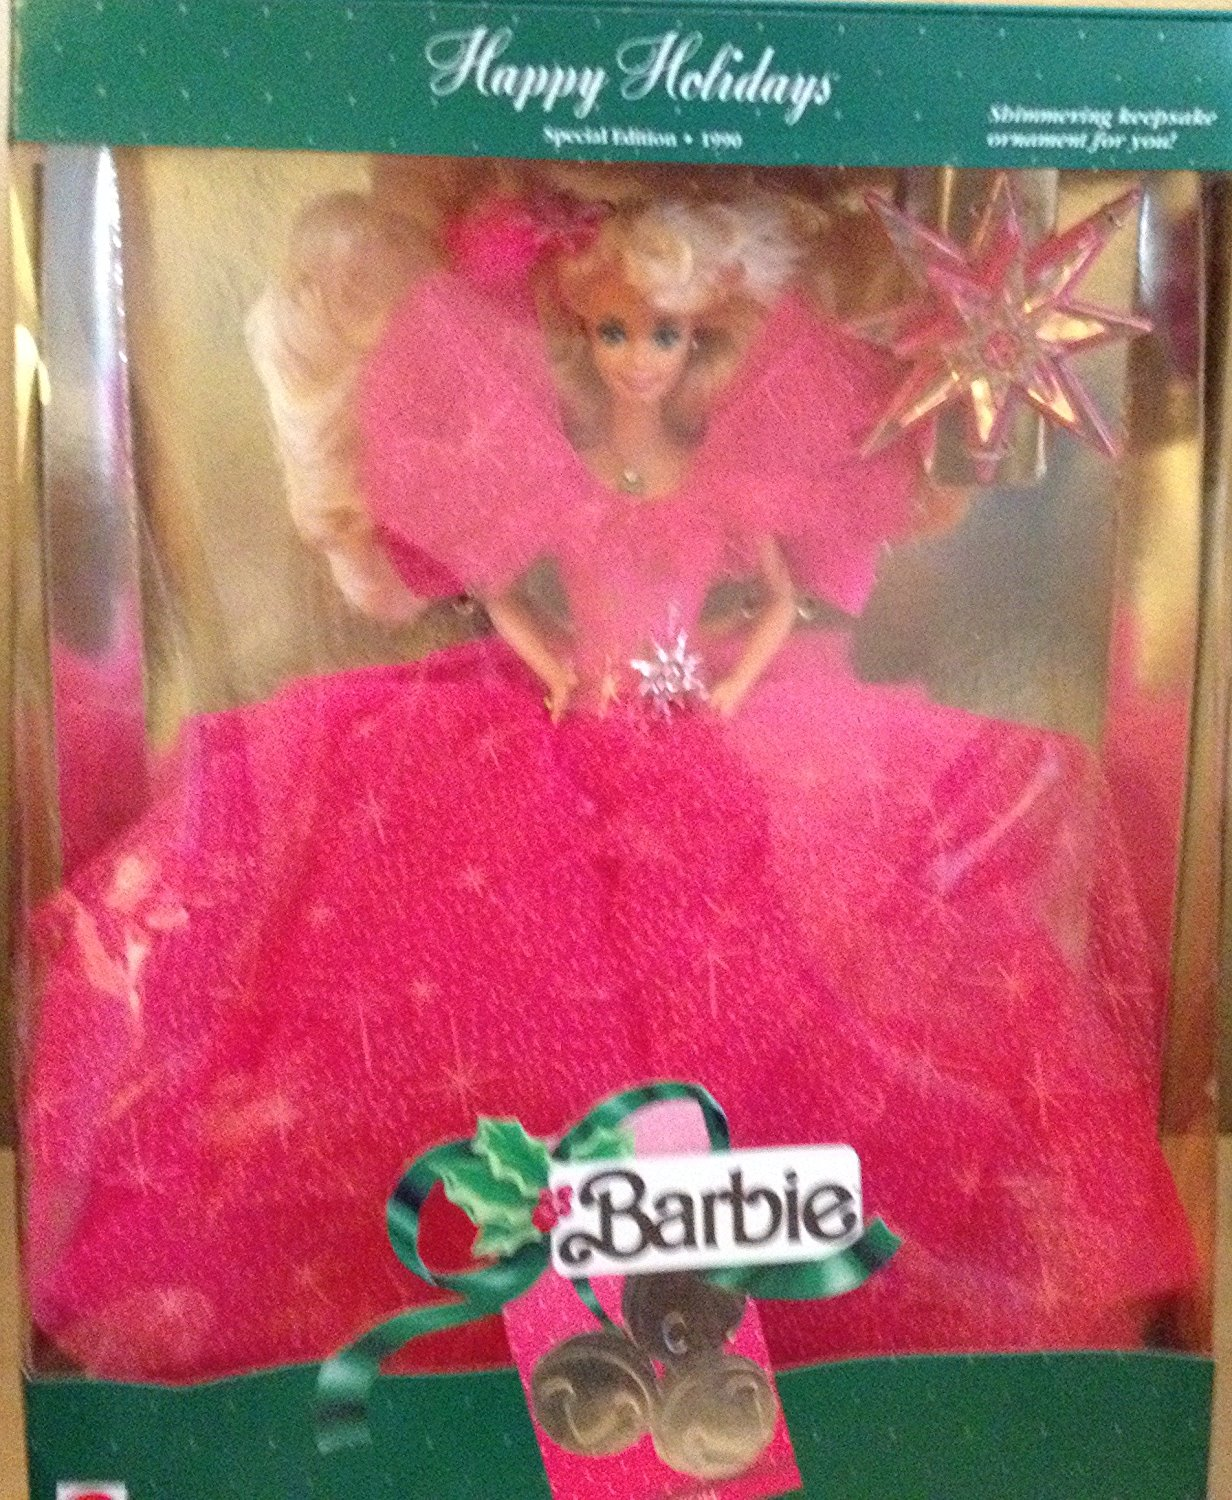 Mattel Happy Holidays 1990 by Mattel, Happy Holiday Barbie Series By Barbie by